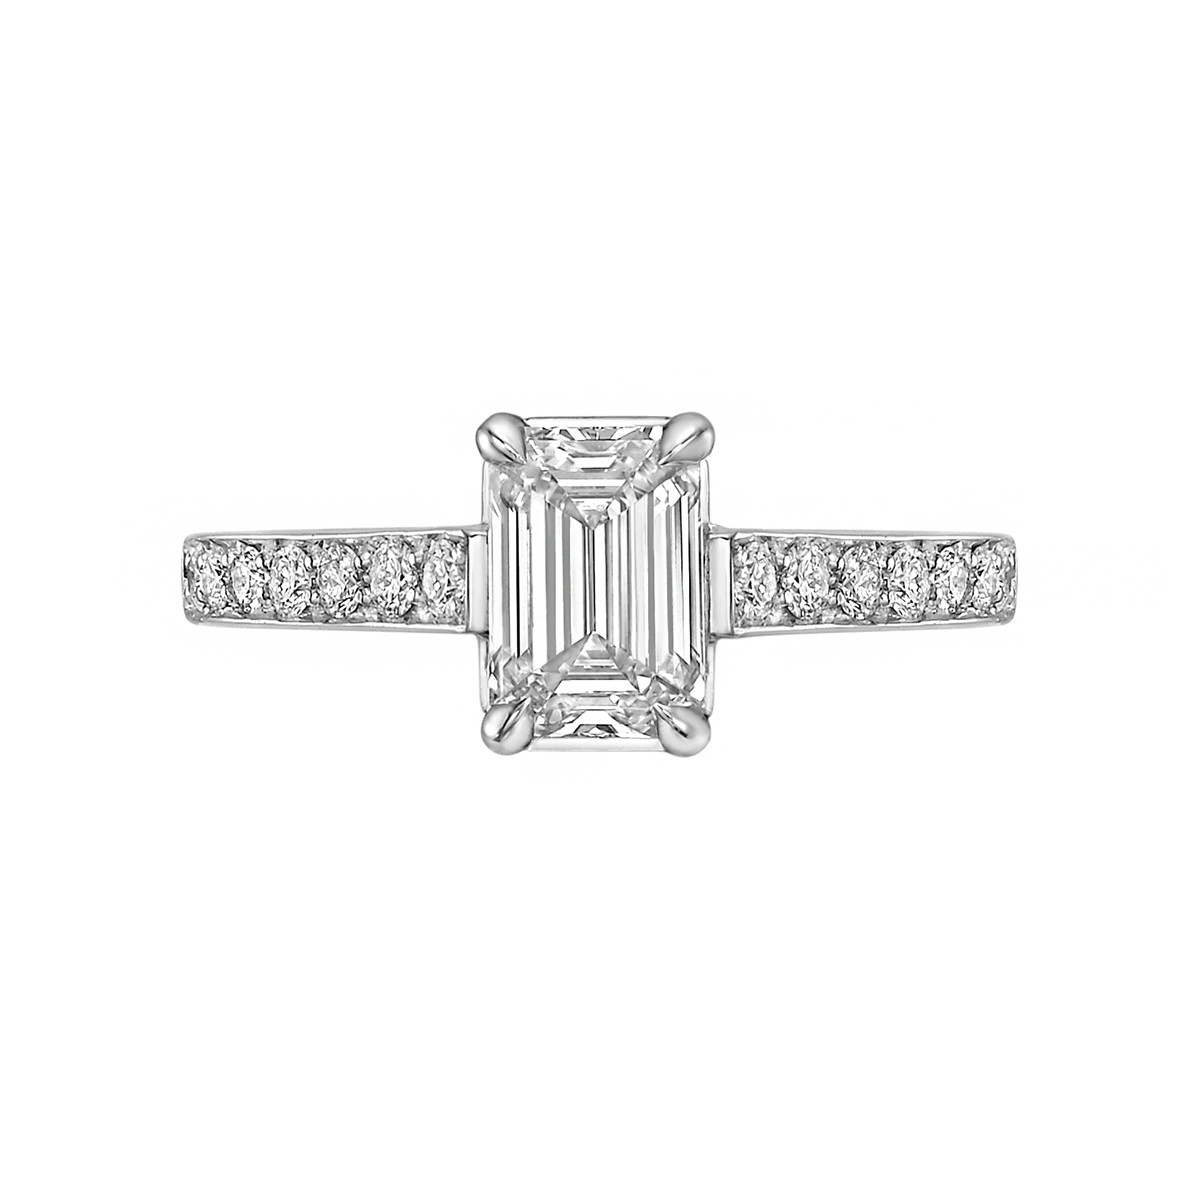 1.01 Carat Emerald-Cut Diamond Ring